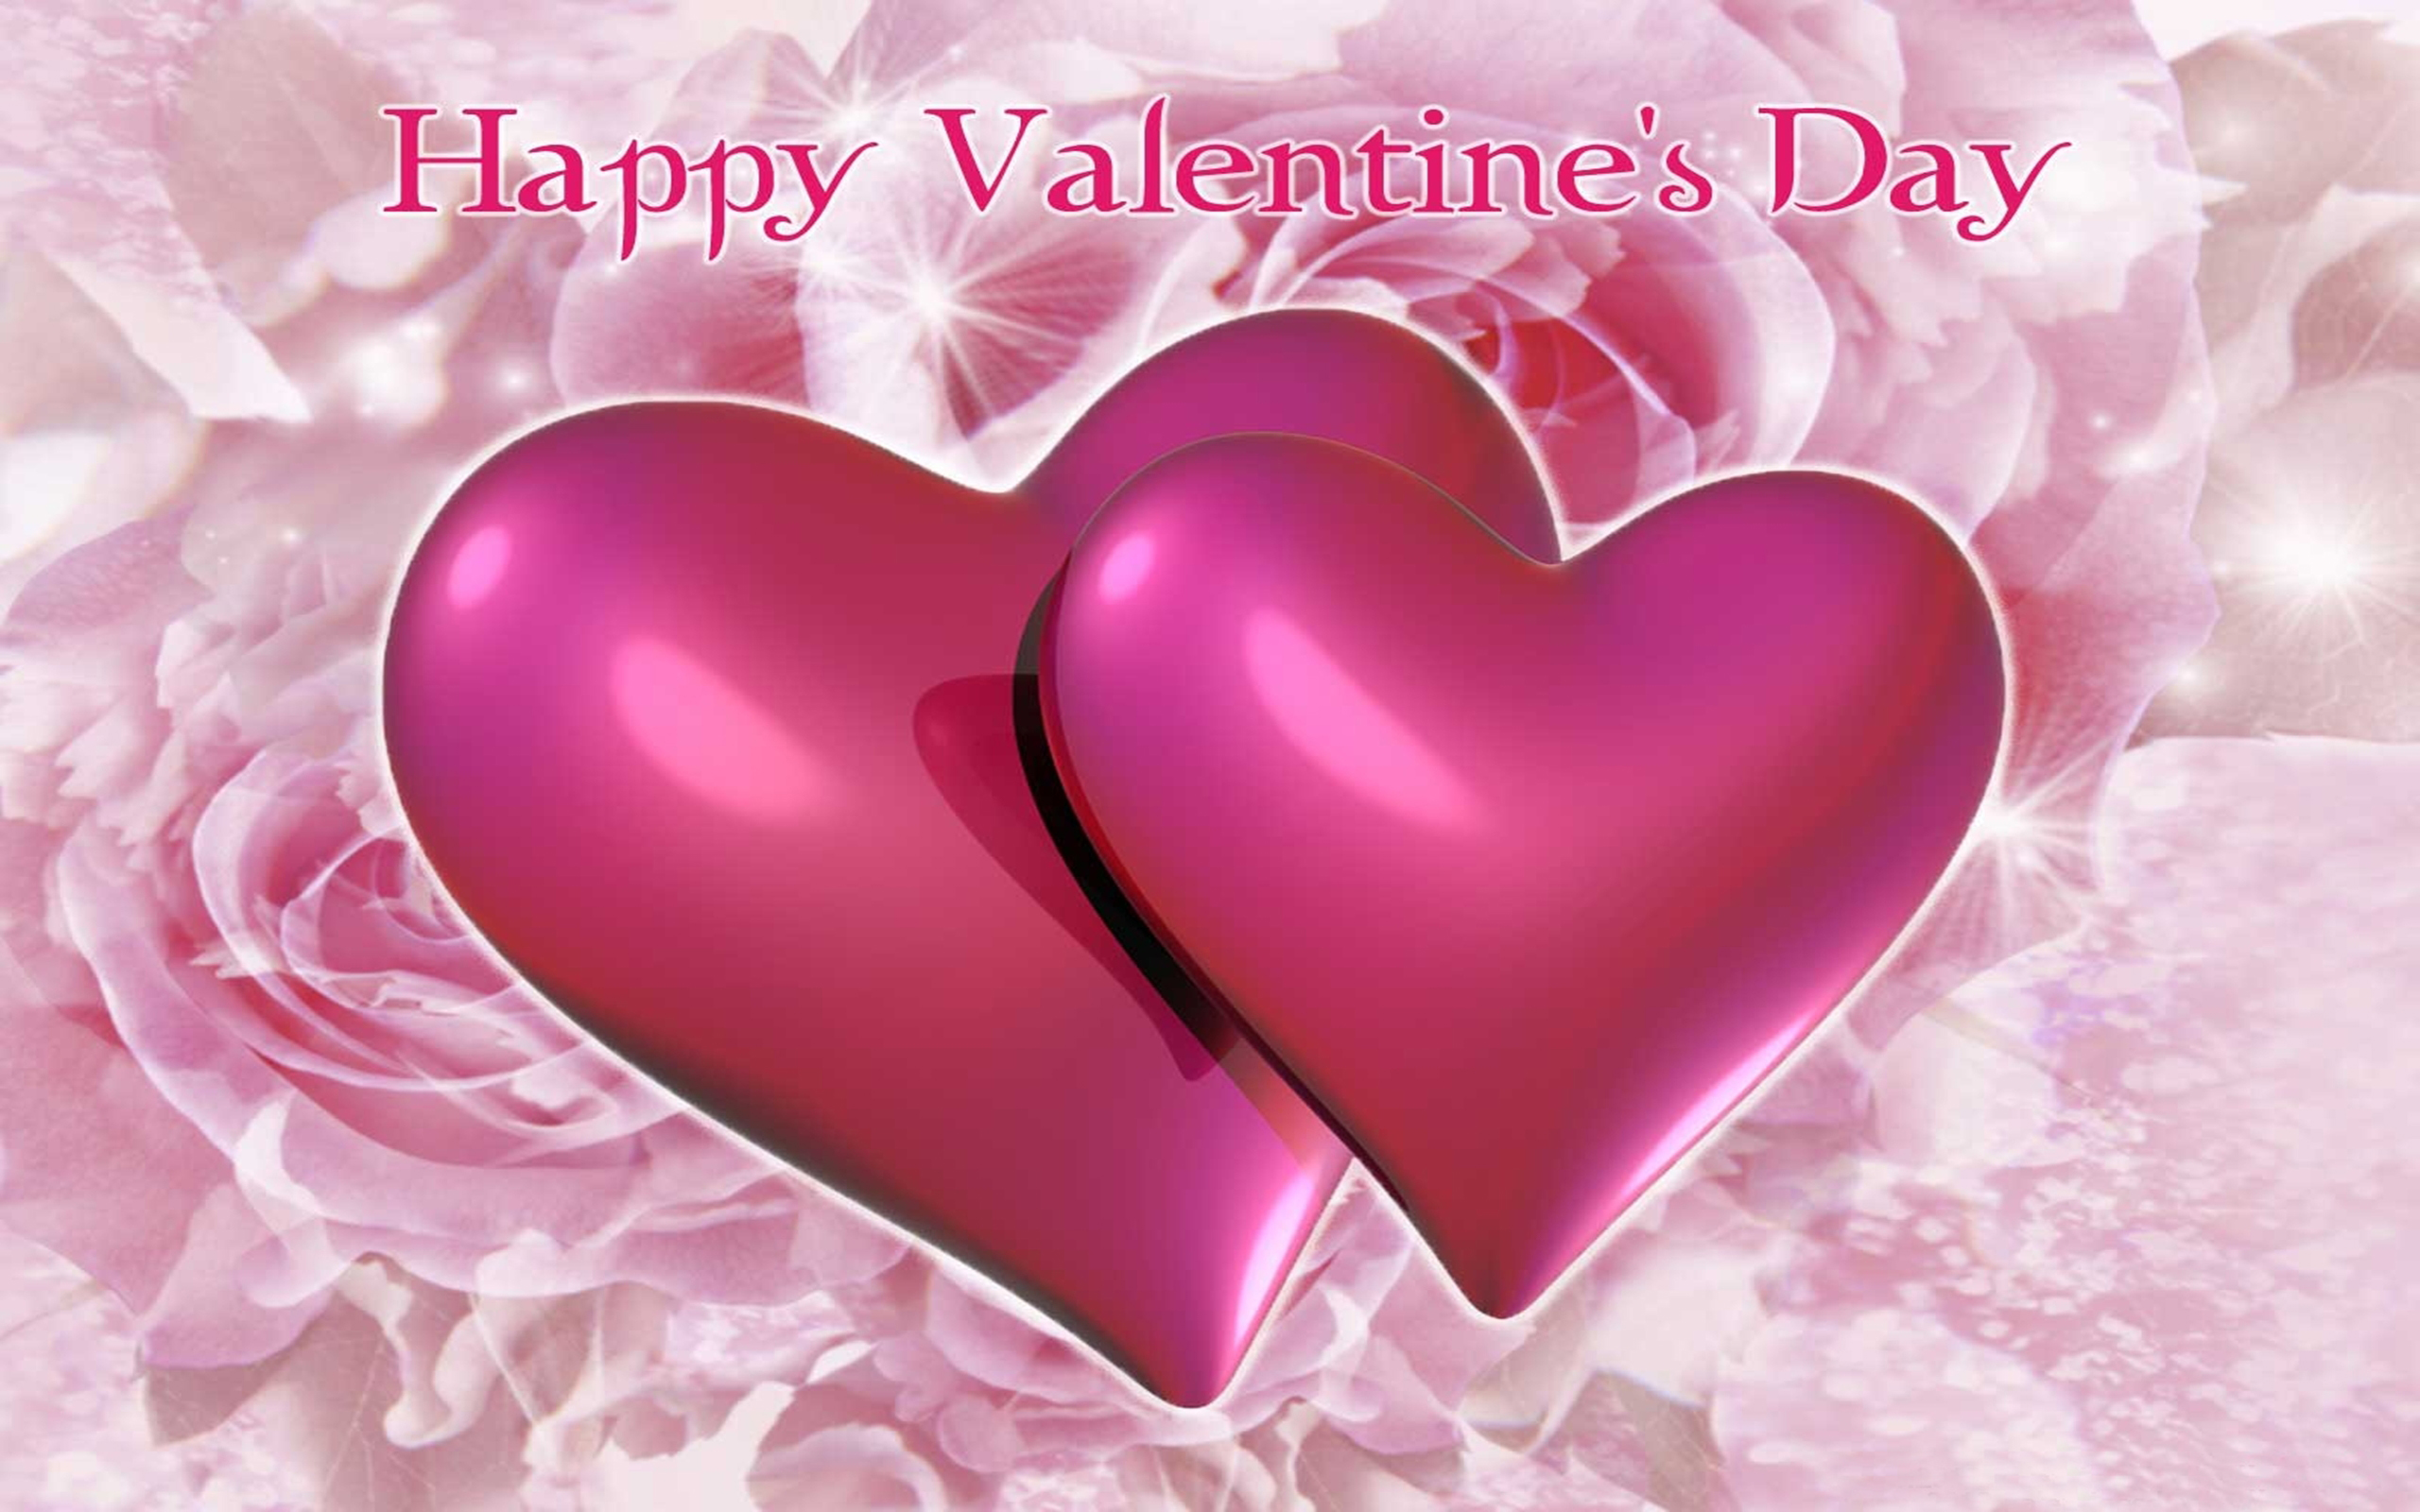 Cute Couple Wallpapers For Lock Screen Happy Valentines Day Hearts Wallpaper 2015 02